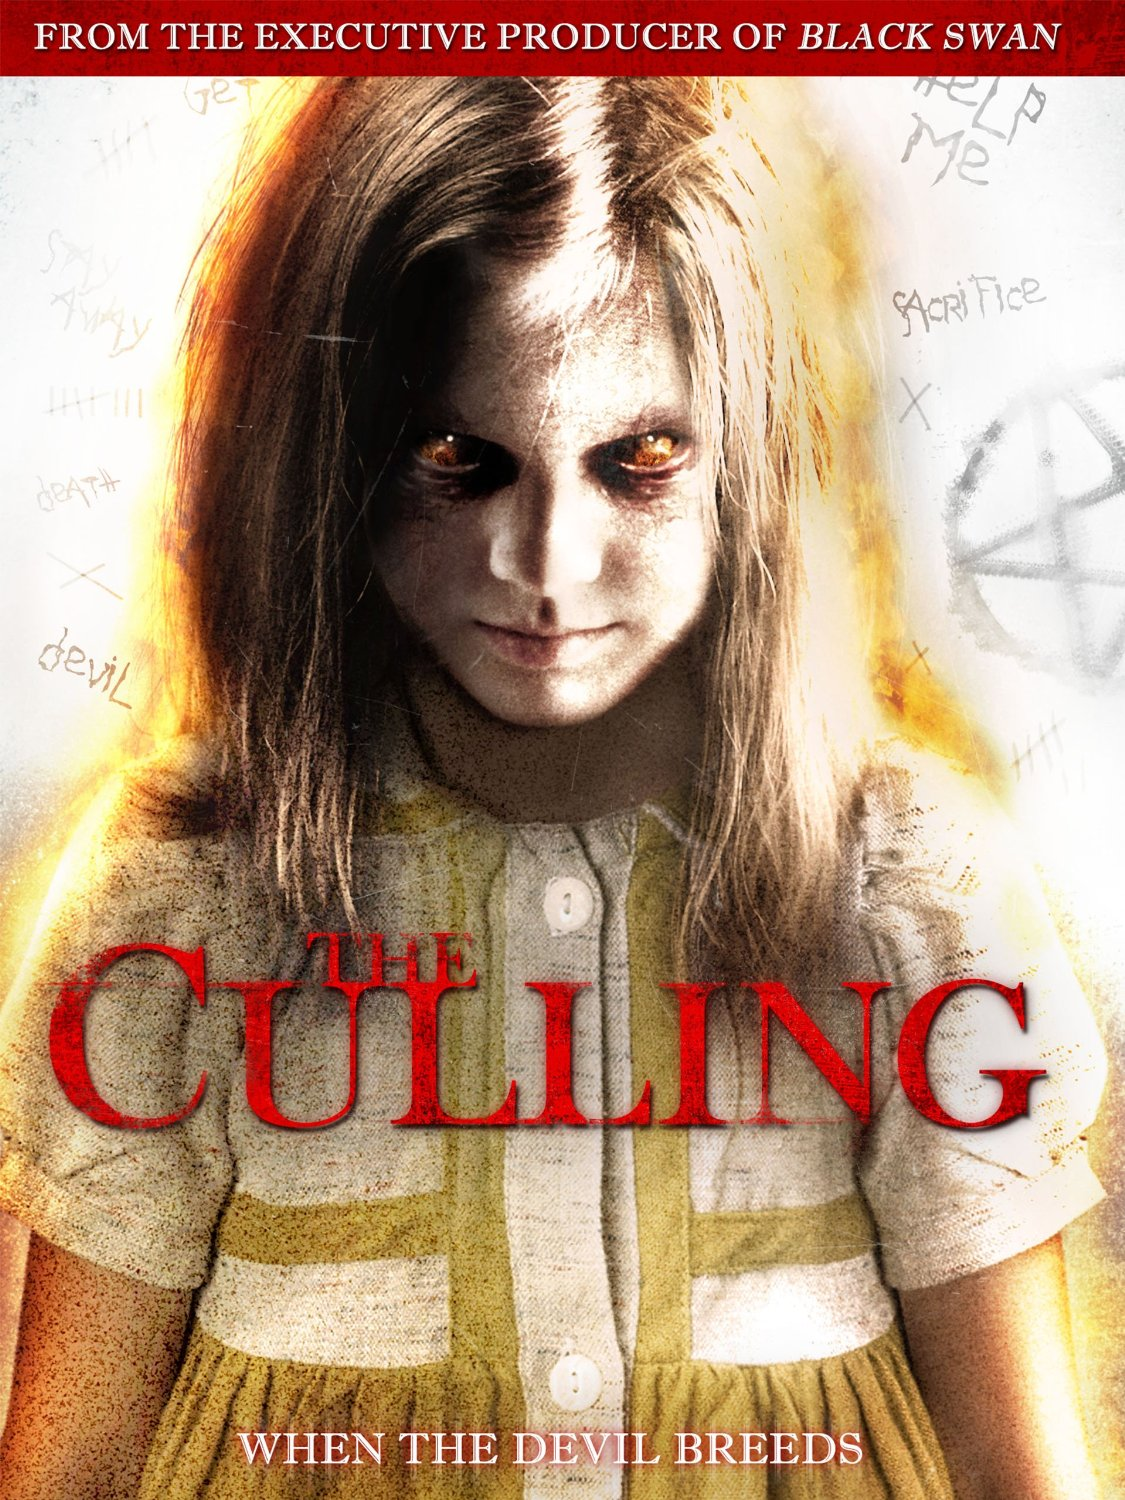 the culling: film review - the horror entertainment magazine